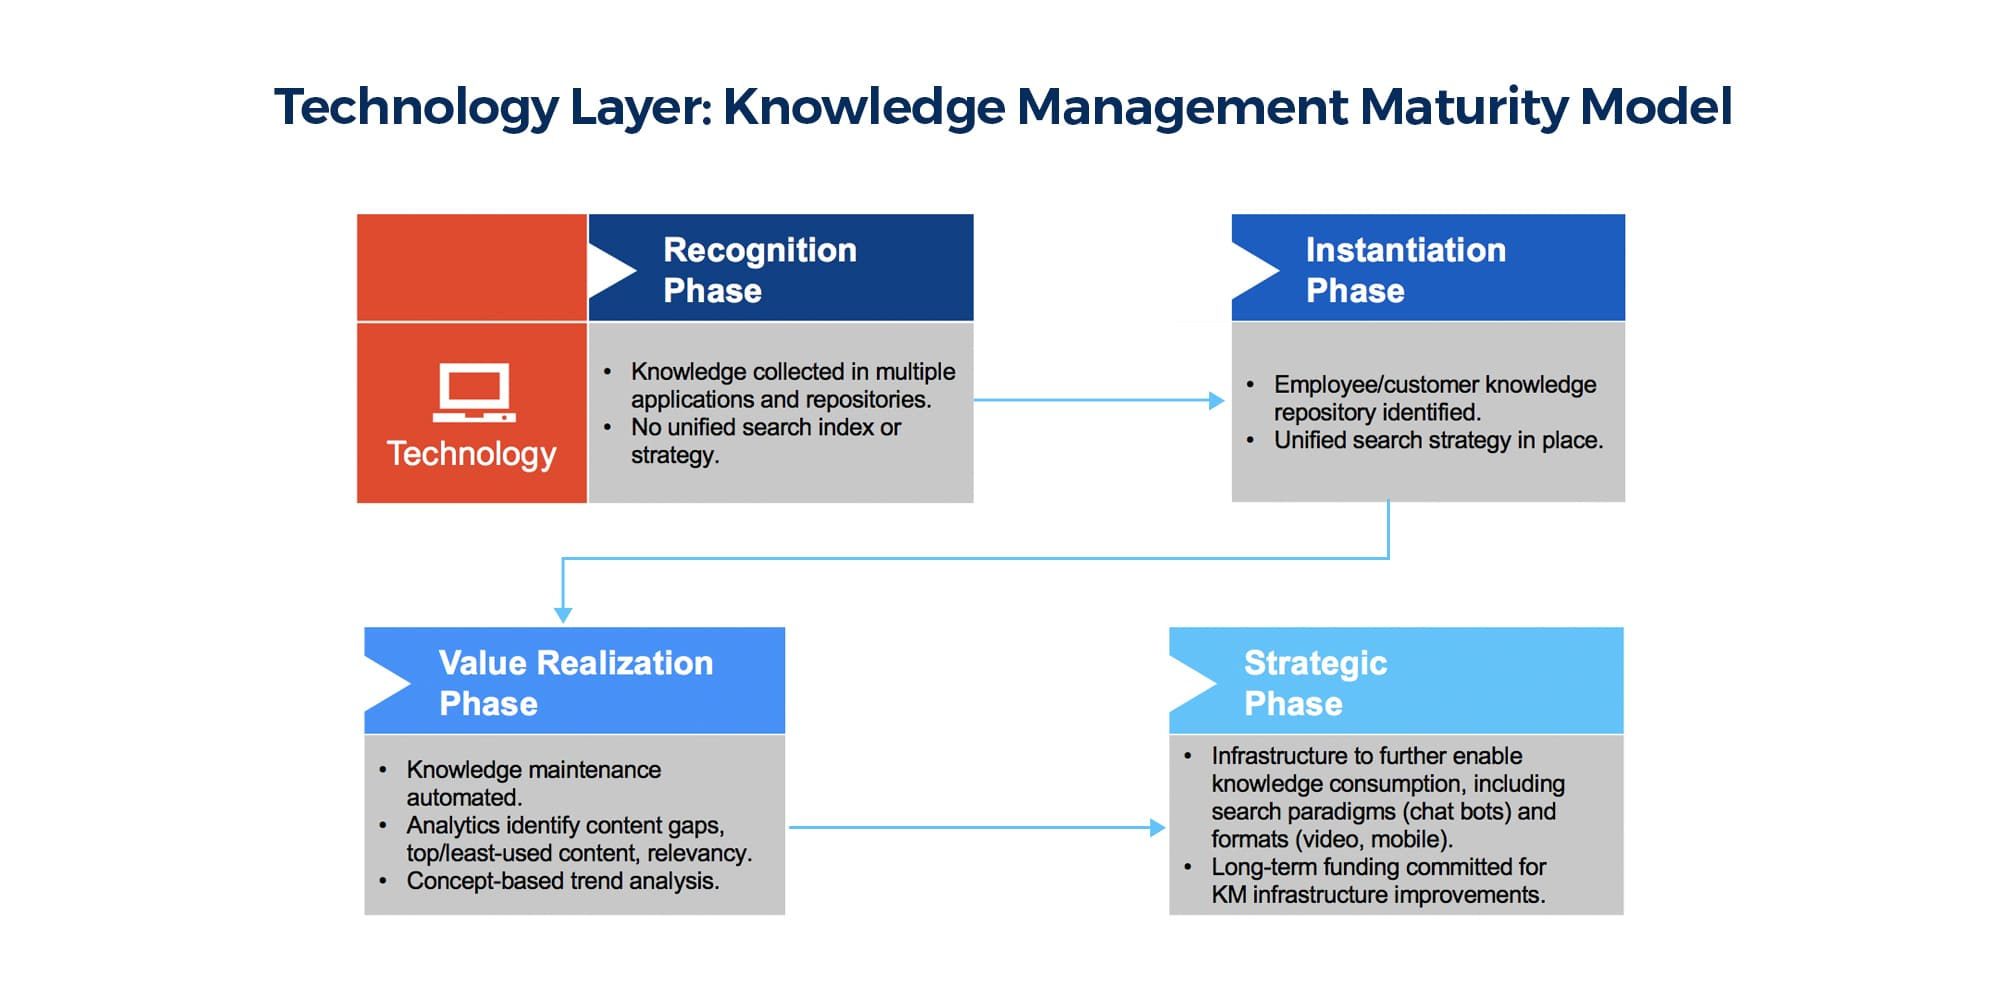 Technology layer Knowledge Maturity Model